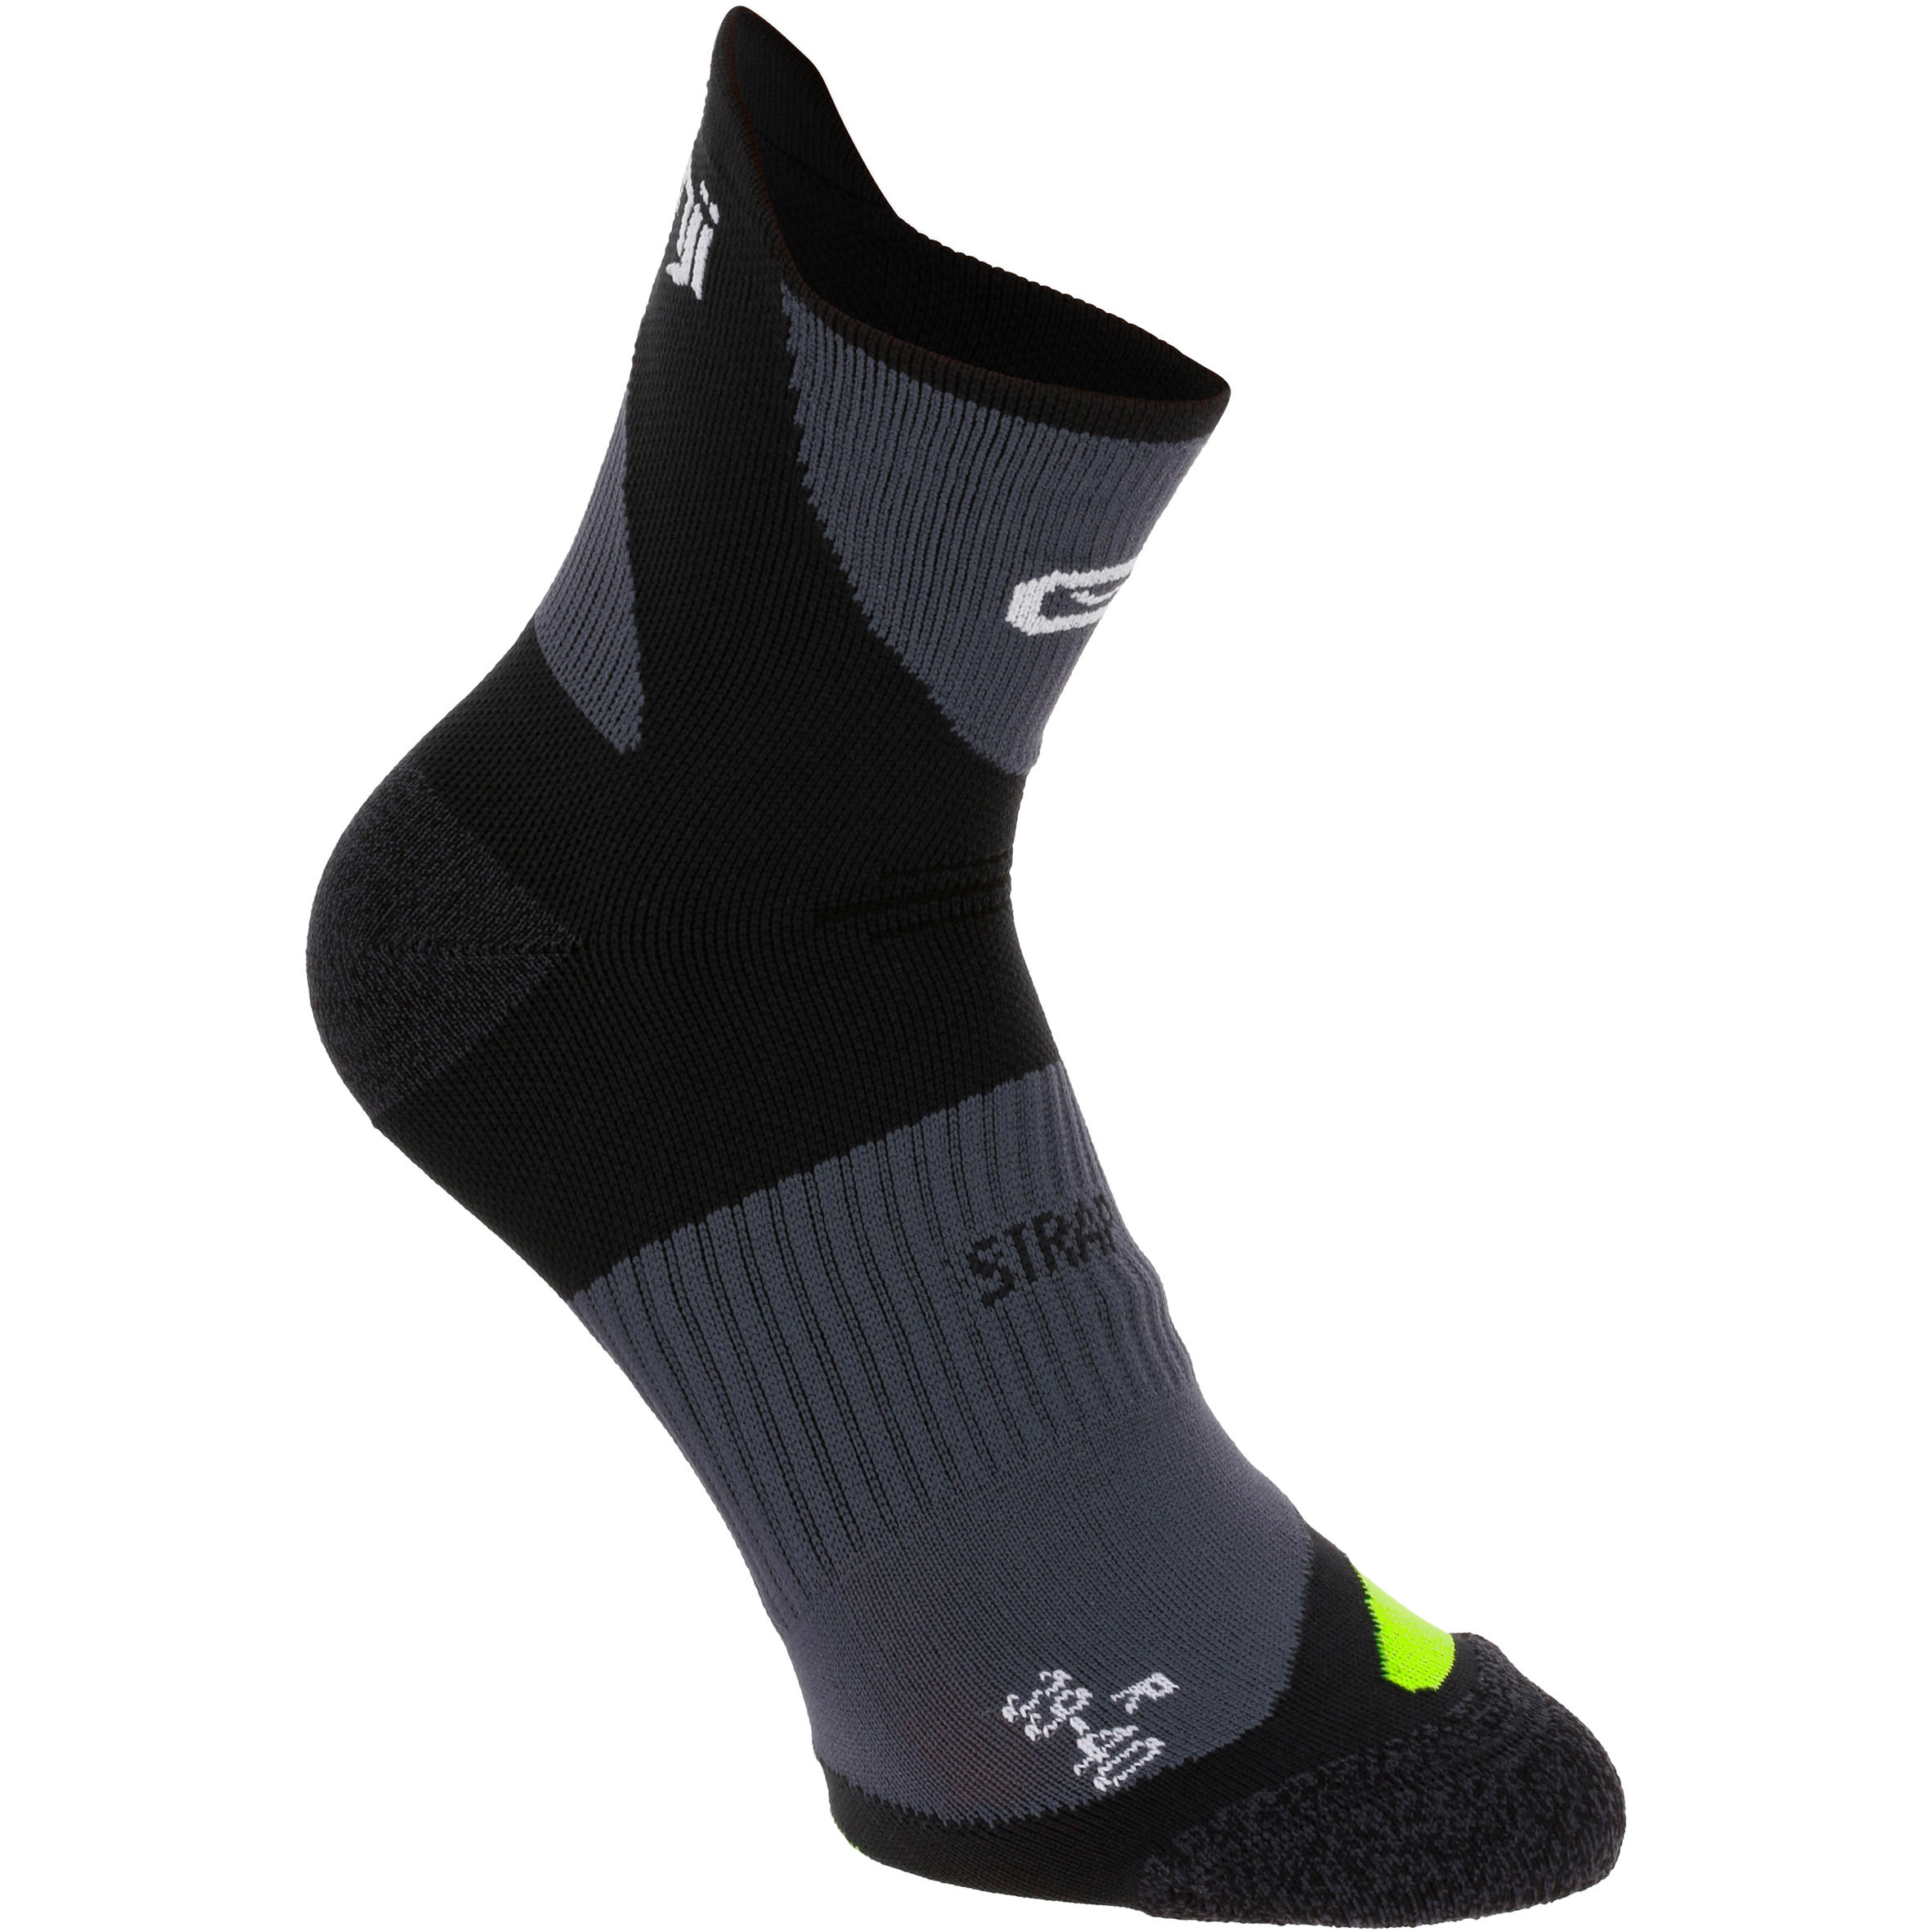 Kiprun Strap Running Socks - Black